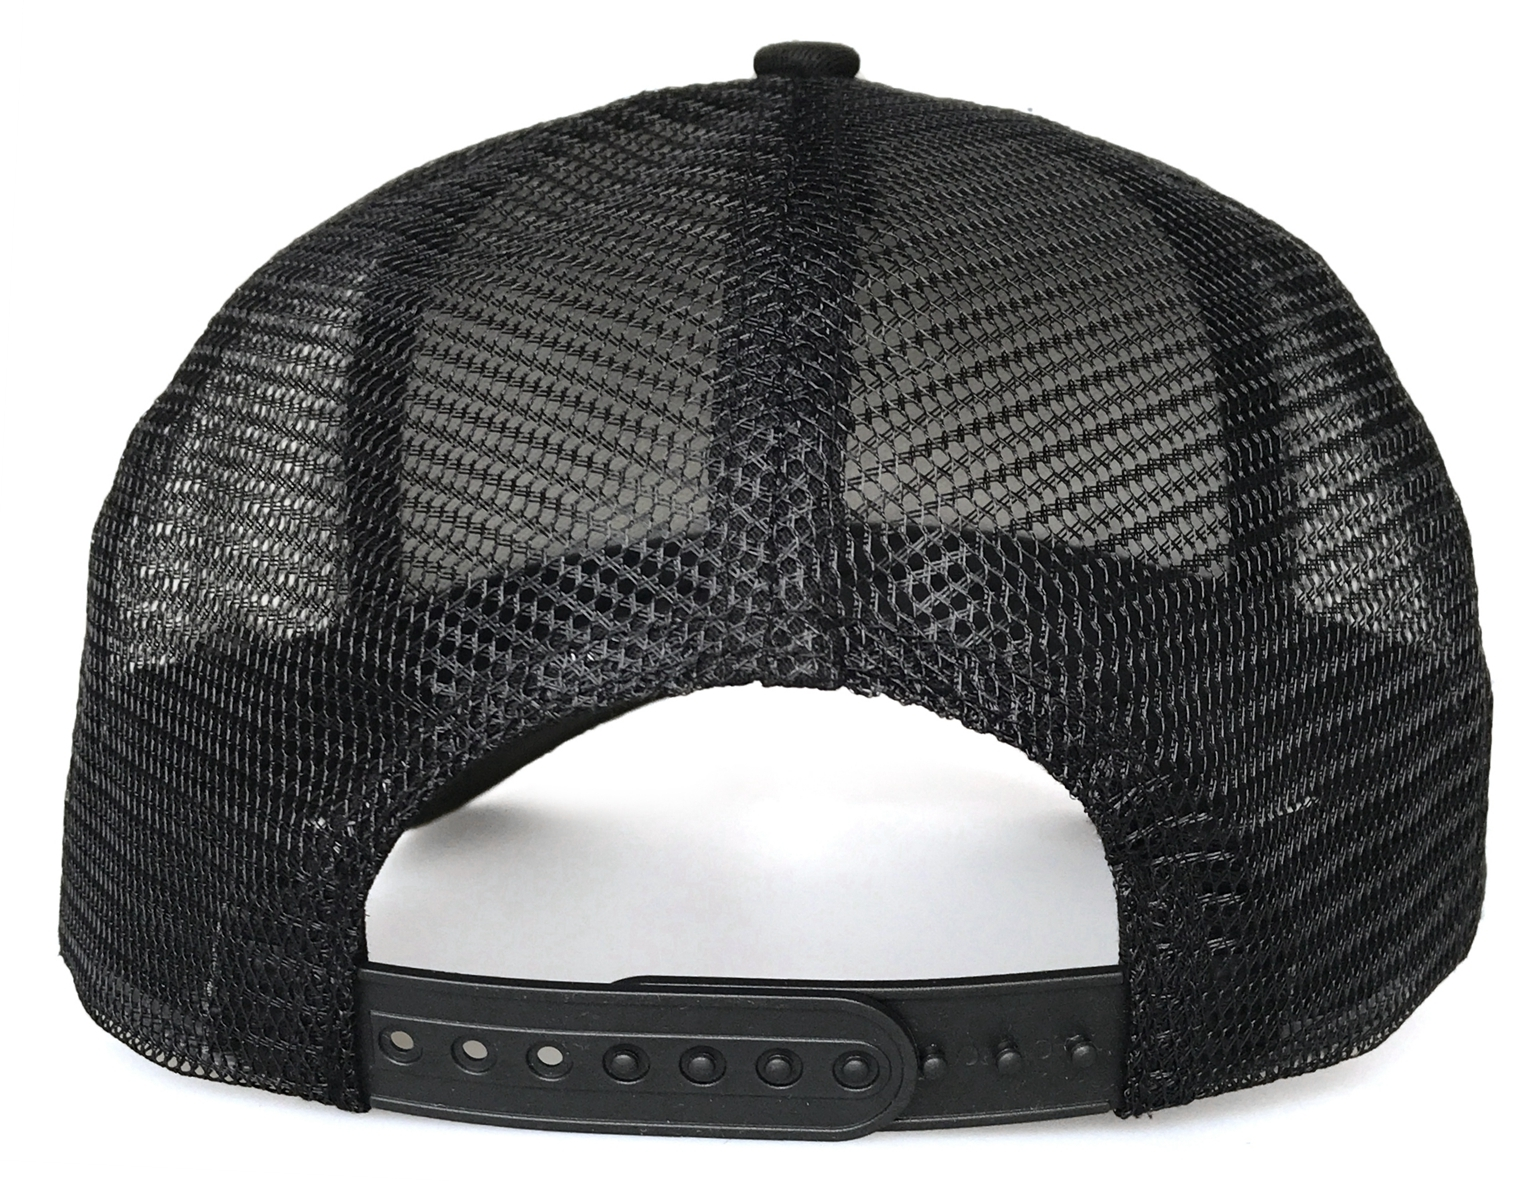 Fashion 5 panel style black 3D embroidery mesh hat